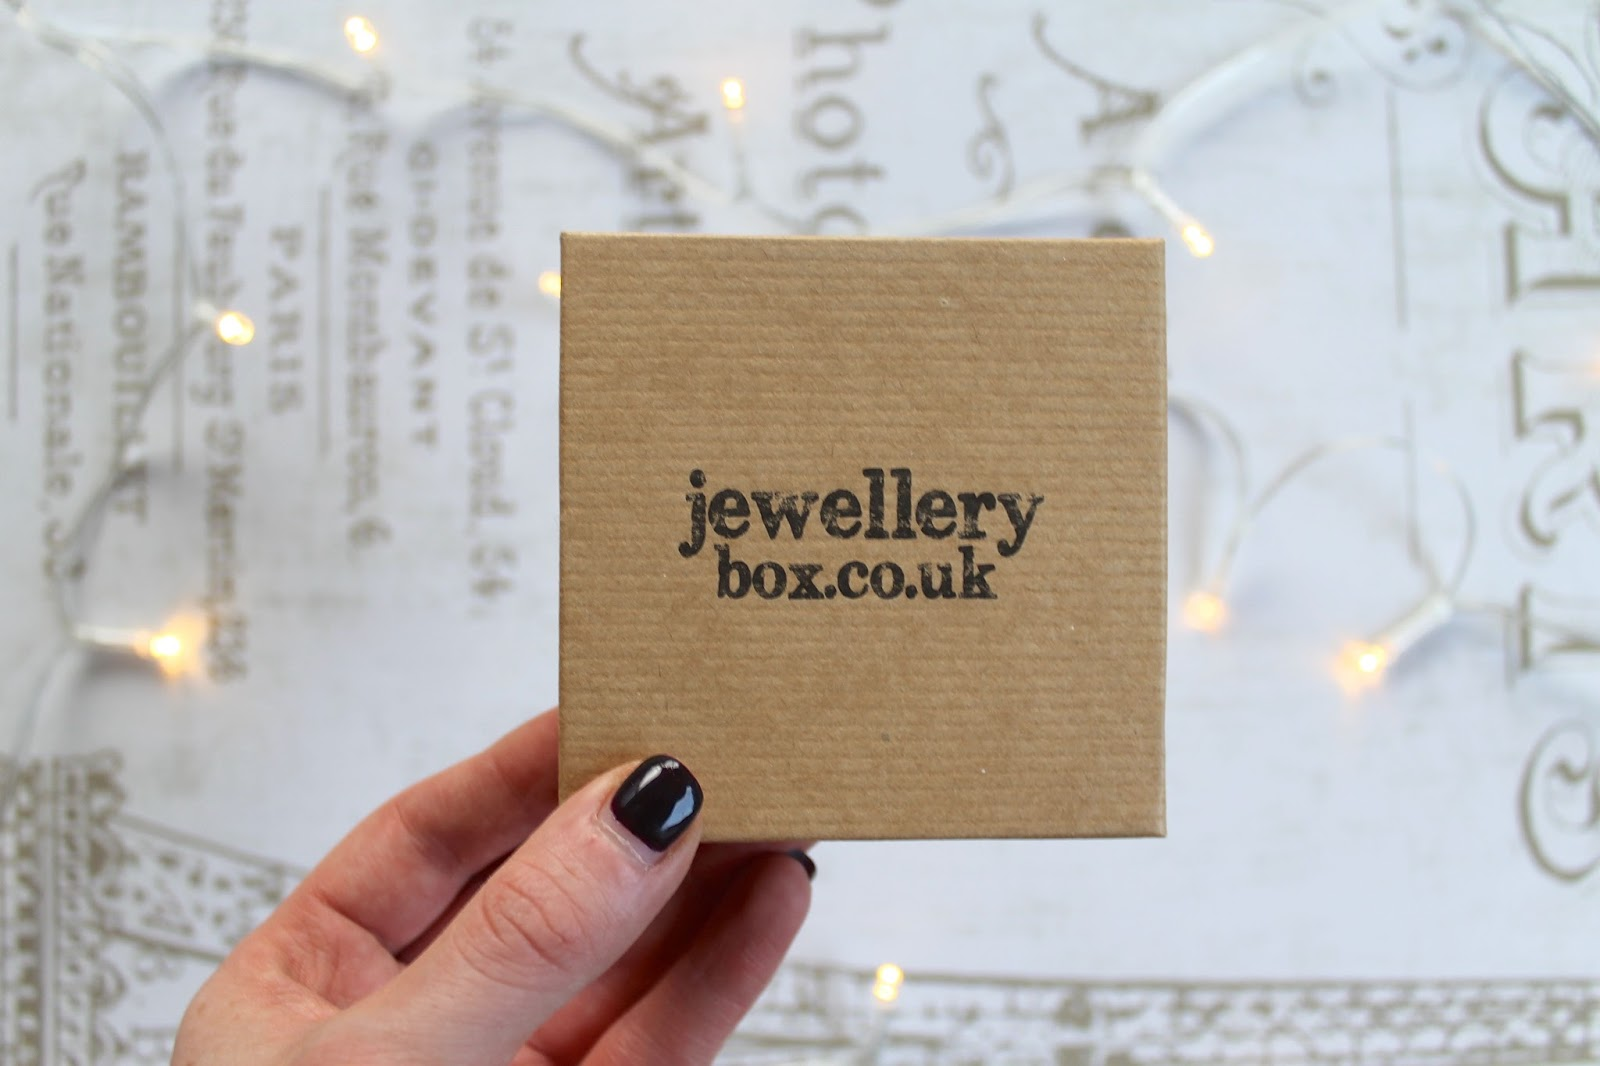 jewellery box haul london shopping